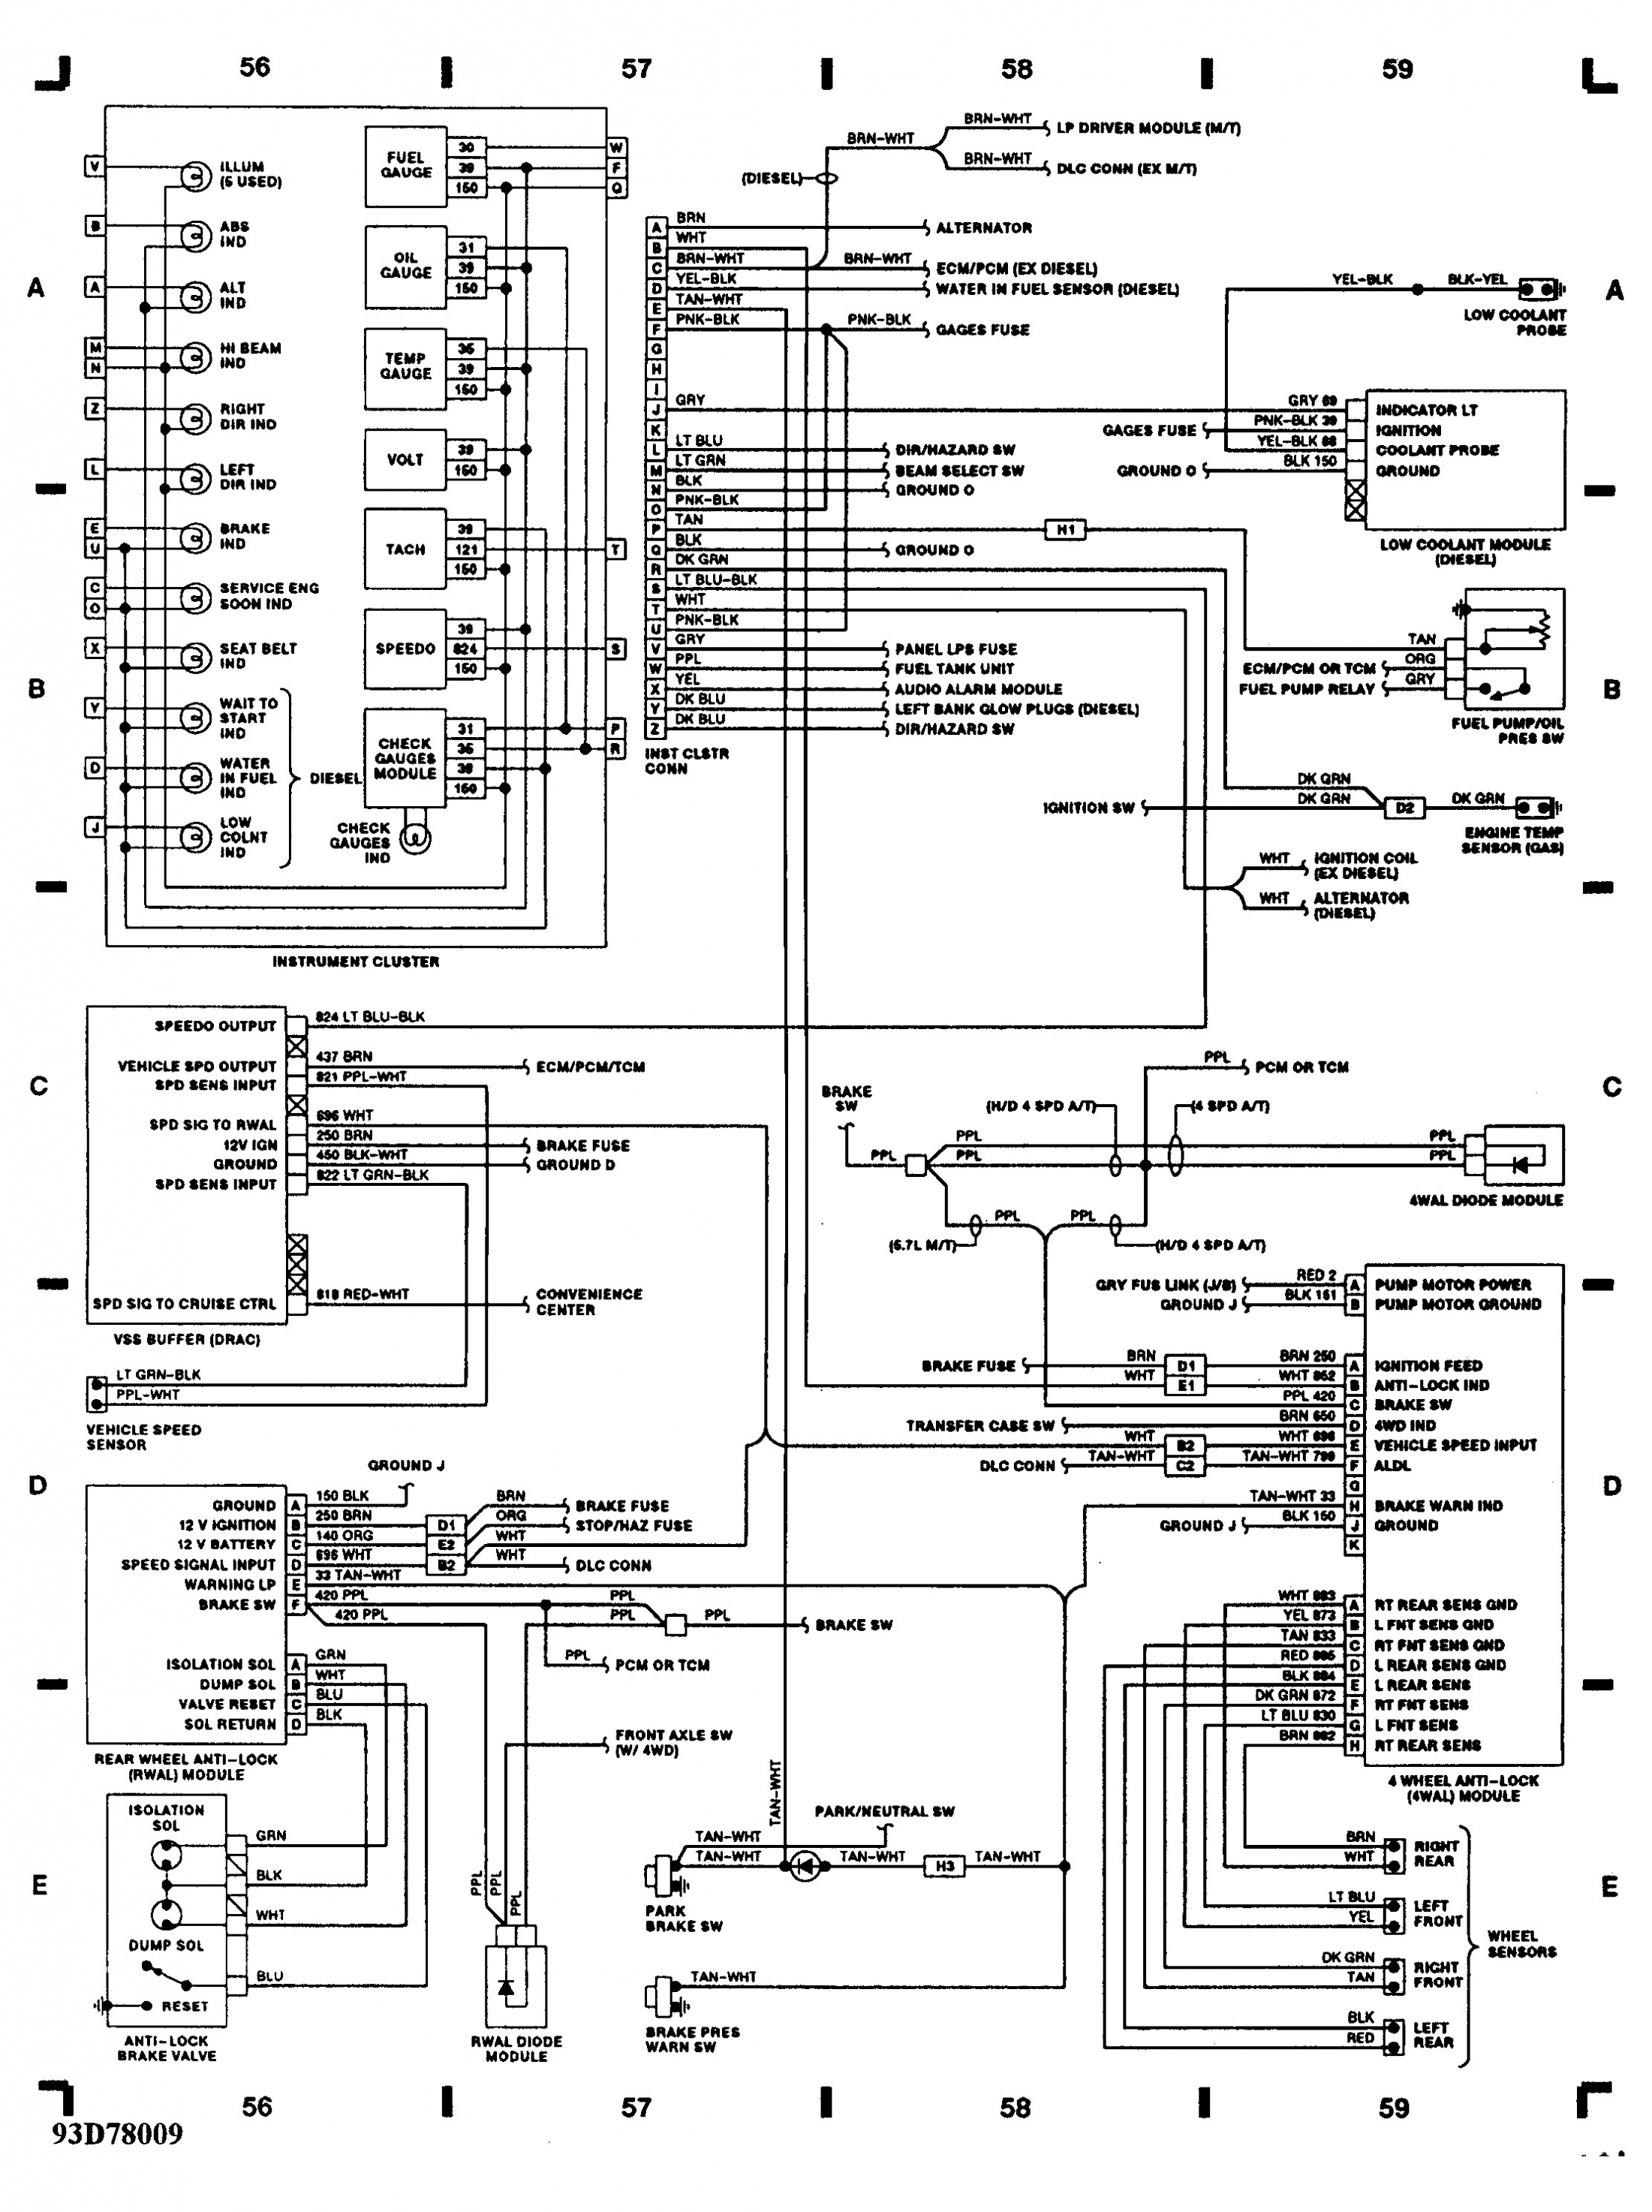 Tpi Gauges Wiring Harness Diagram | Wiring Library - 5.7 Vortec Wiring Harness Diagram